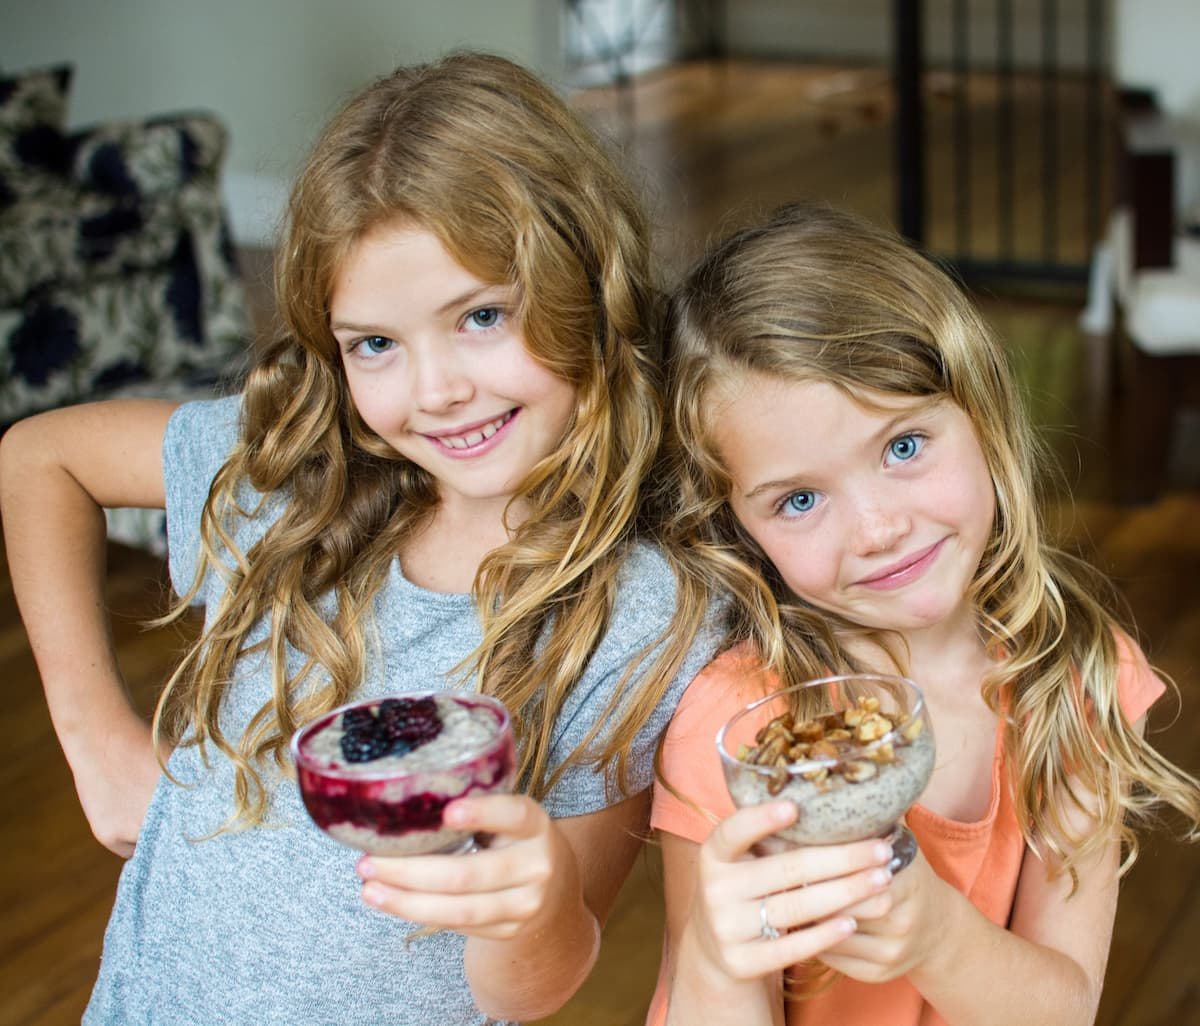 Chia pudding and two cute little girls